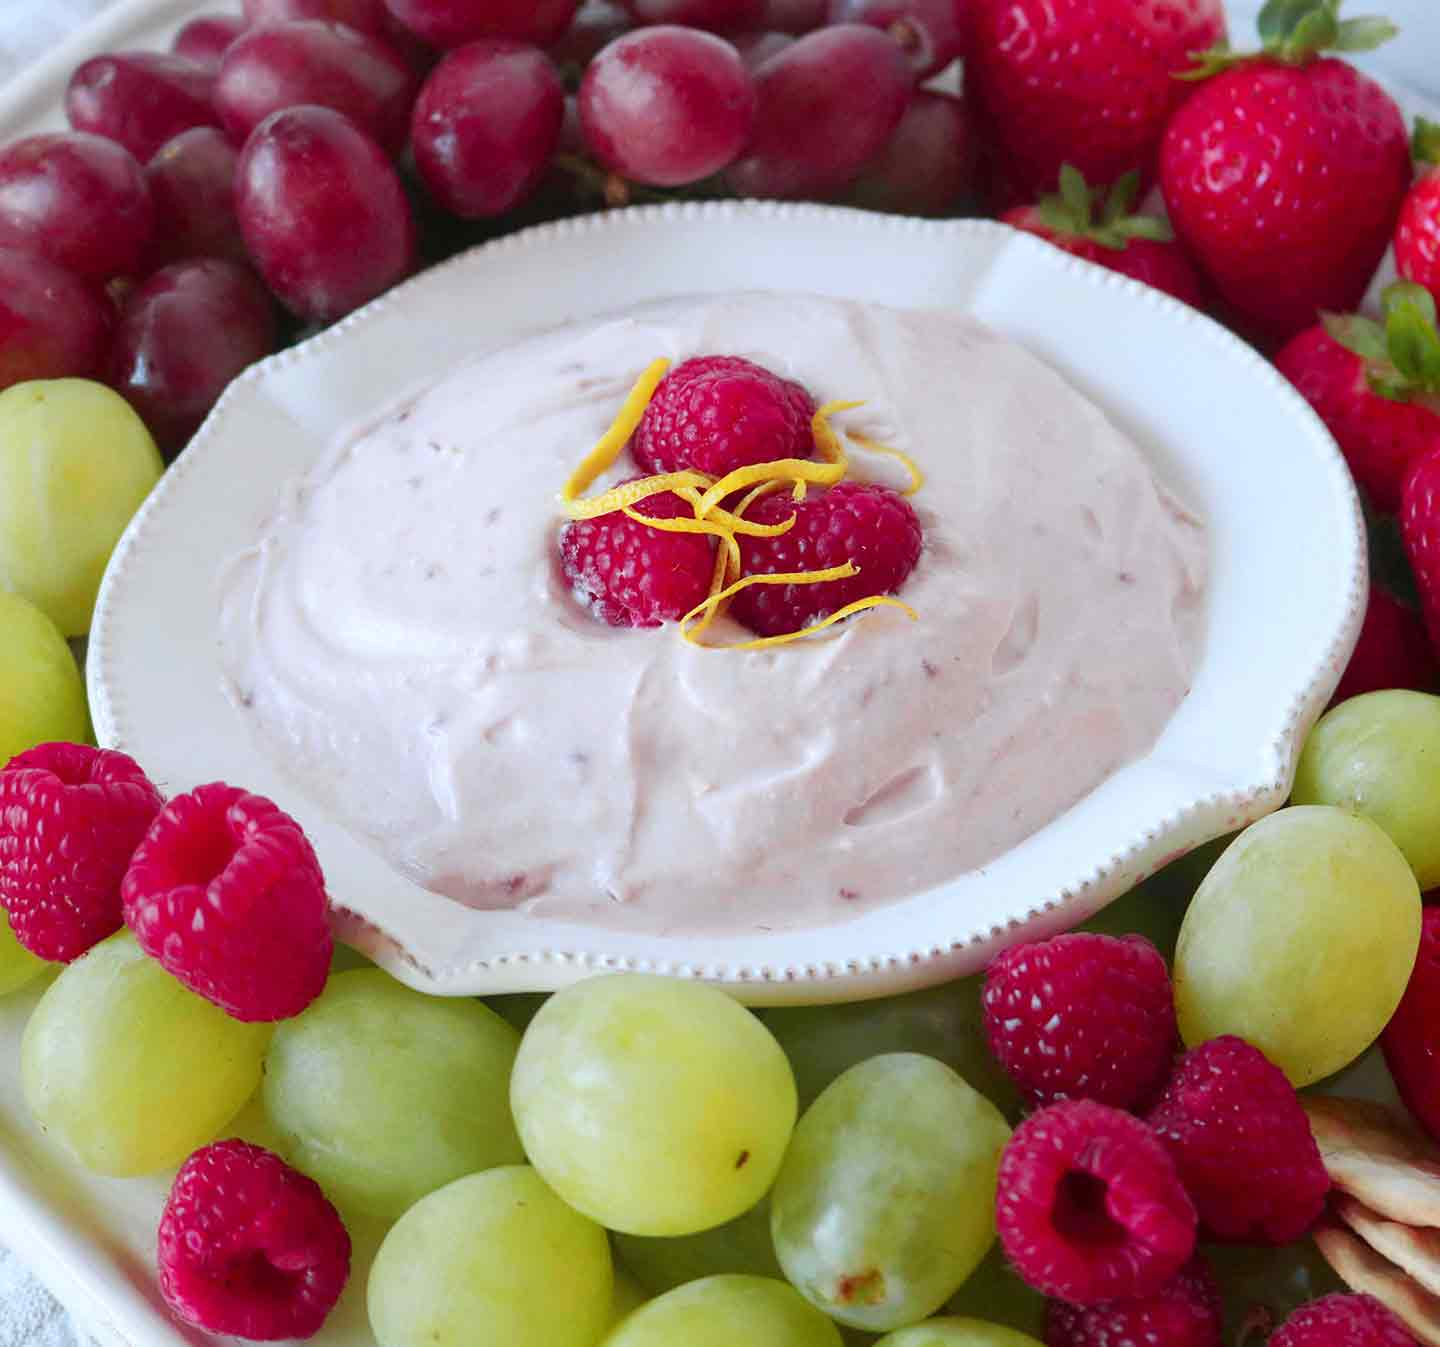 Raspberry Yogurt Fruit Dip is served with fresh raspberries, green and red grapes